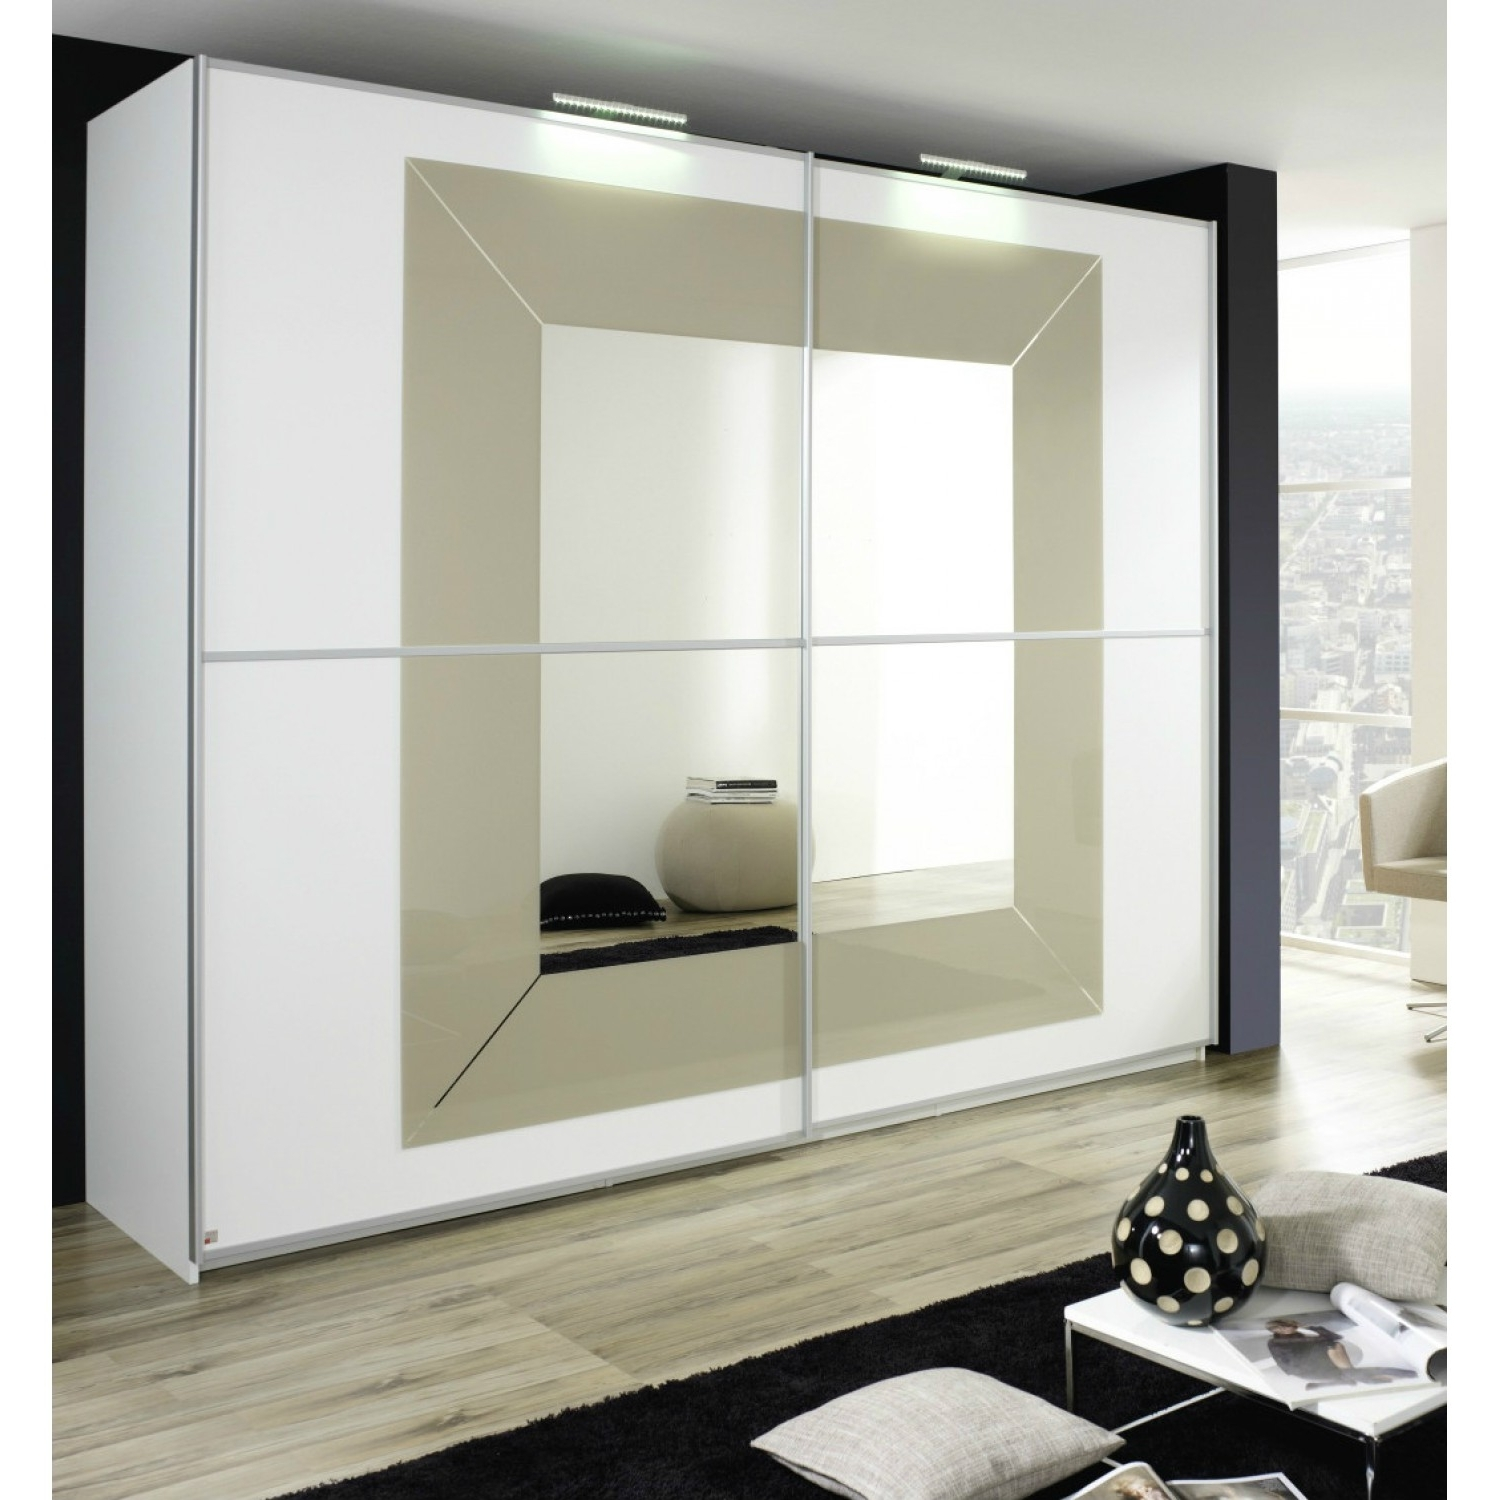 Best And Newest Rauch Wardrobes Intended For Focus Dialog Rauch Sliding Wardrobe (225cm) – Wardrobes – Bedrooms (View 4 of 15)